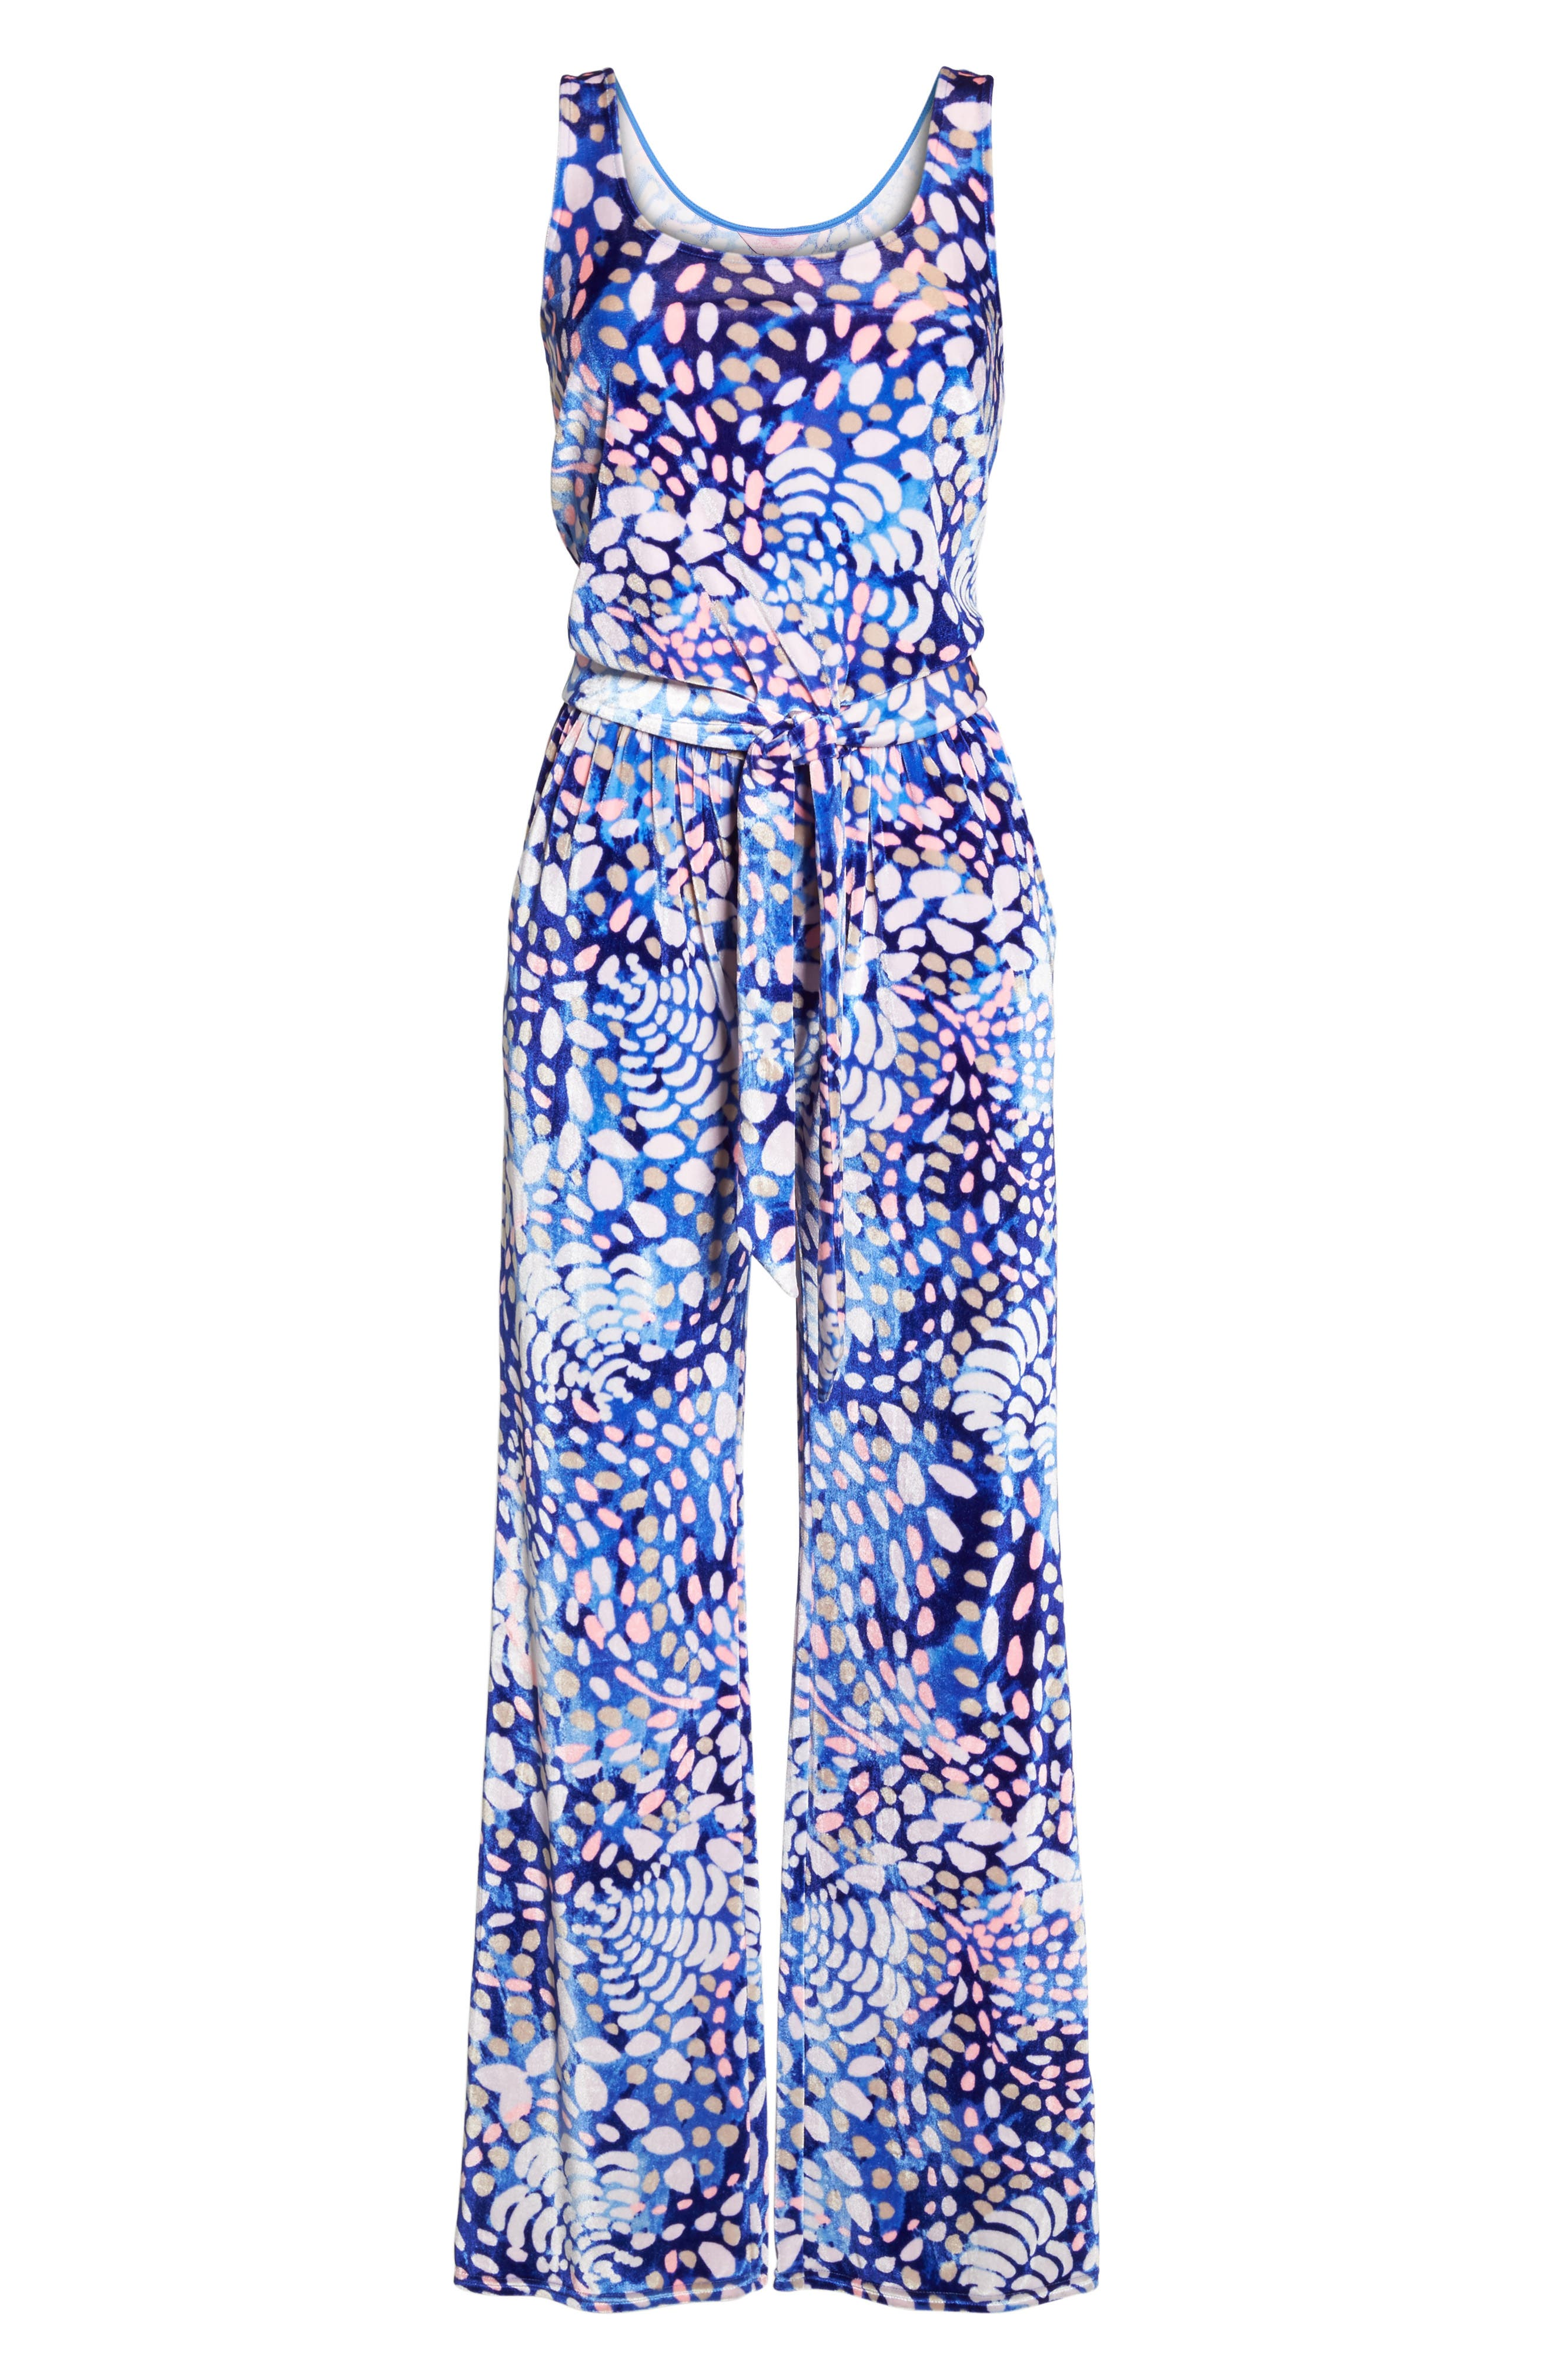 Nena Velour Jumpsuit,                             Alternate thumbnail 6, color,                             400